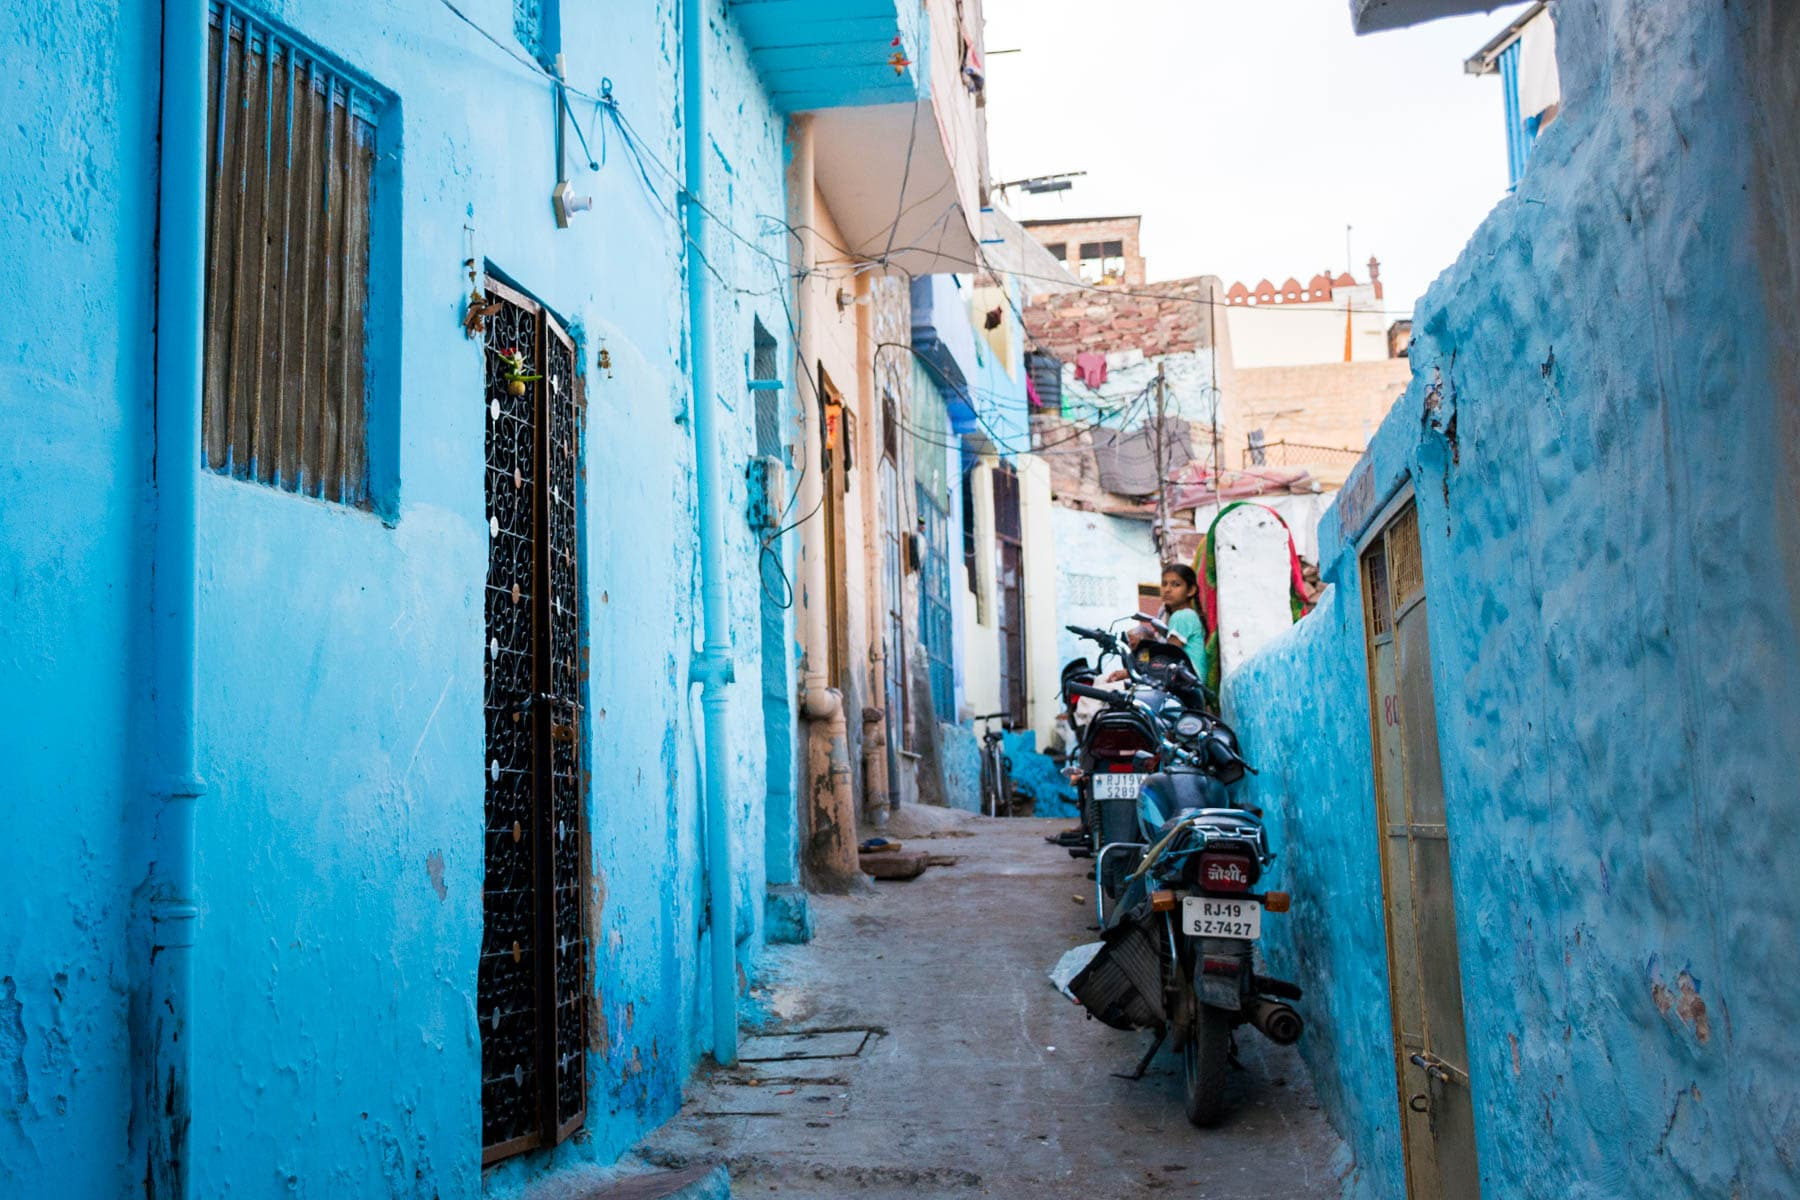 Photo essay about the streets and people of the Blue City of Jodhpur, Rajasthan, India - A girl in a blue neighborhood - Lost With Purpose